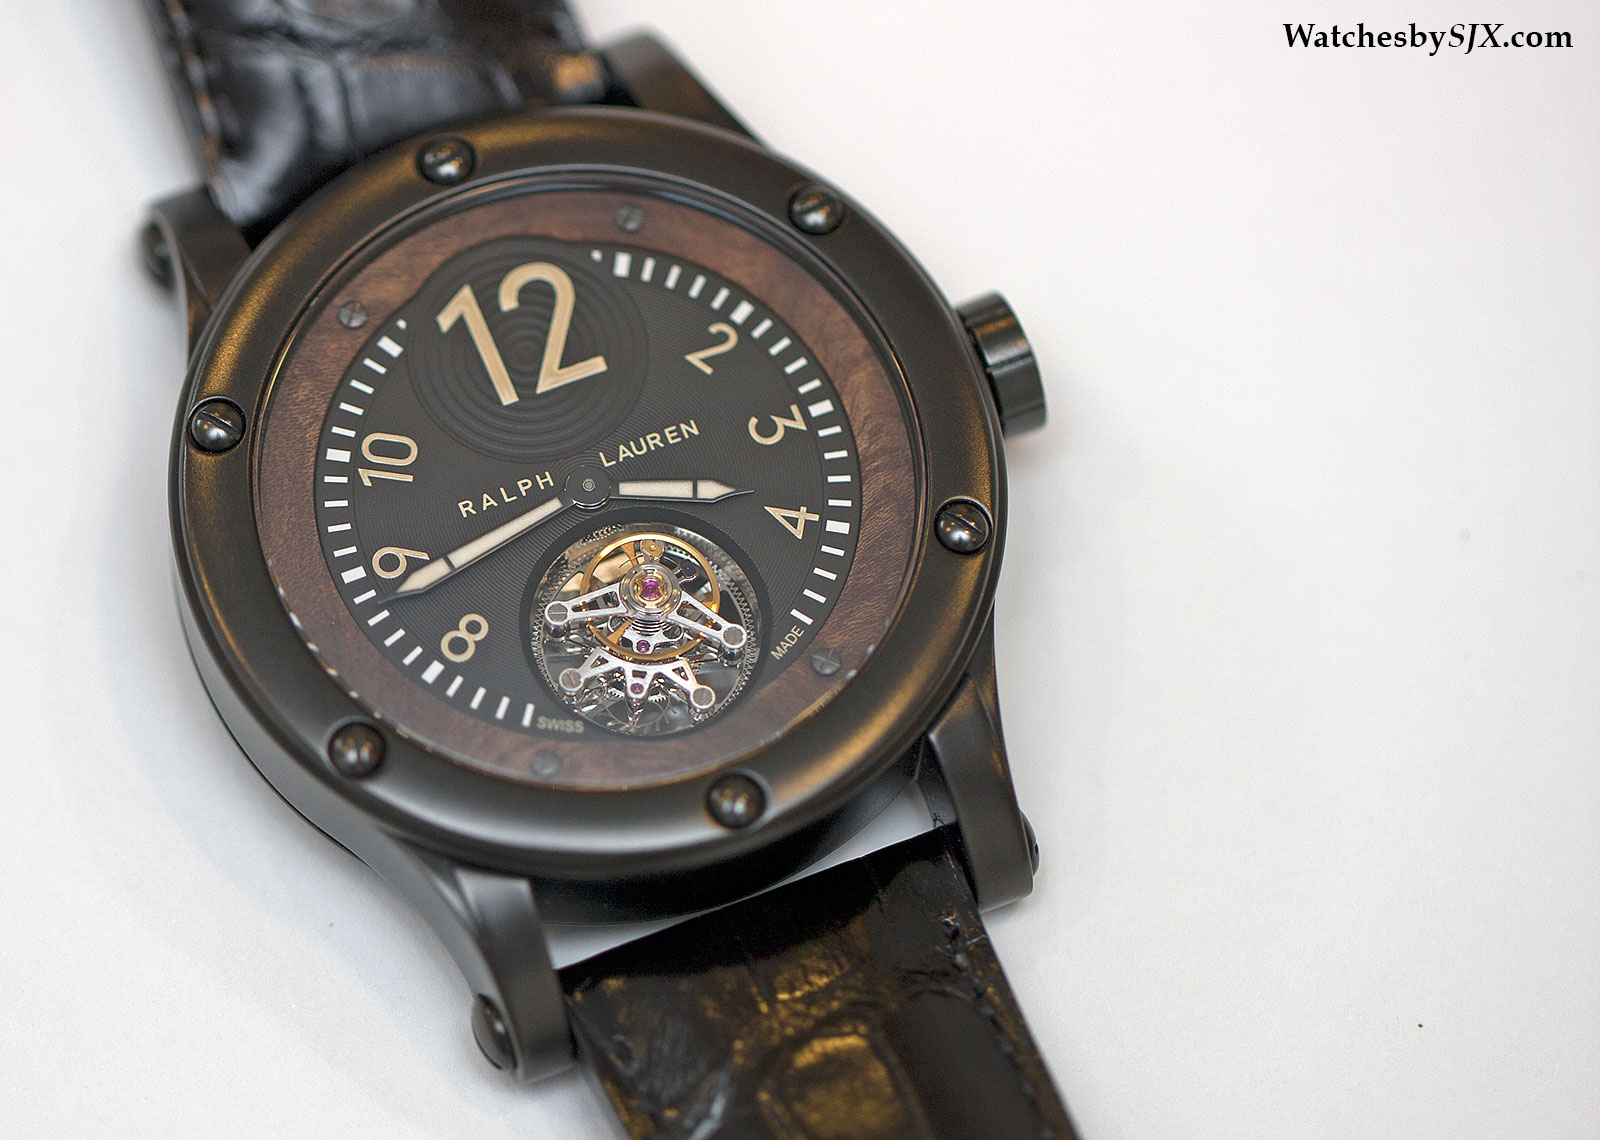 Hands-On With The Ralph Lauren Black Safari Flying Tourbillon (With Live  Photos And Price) f4cc4420e1c60